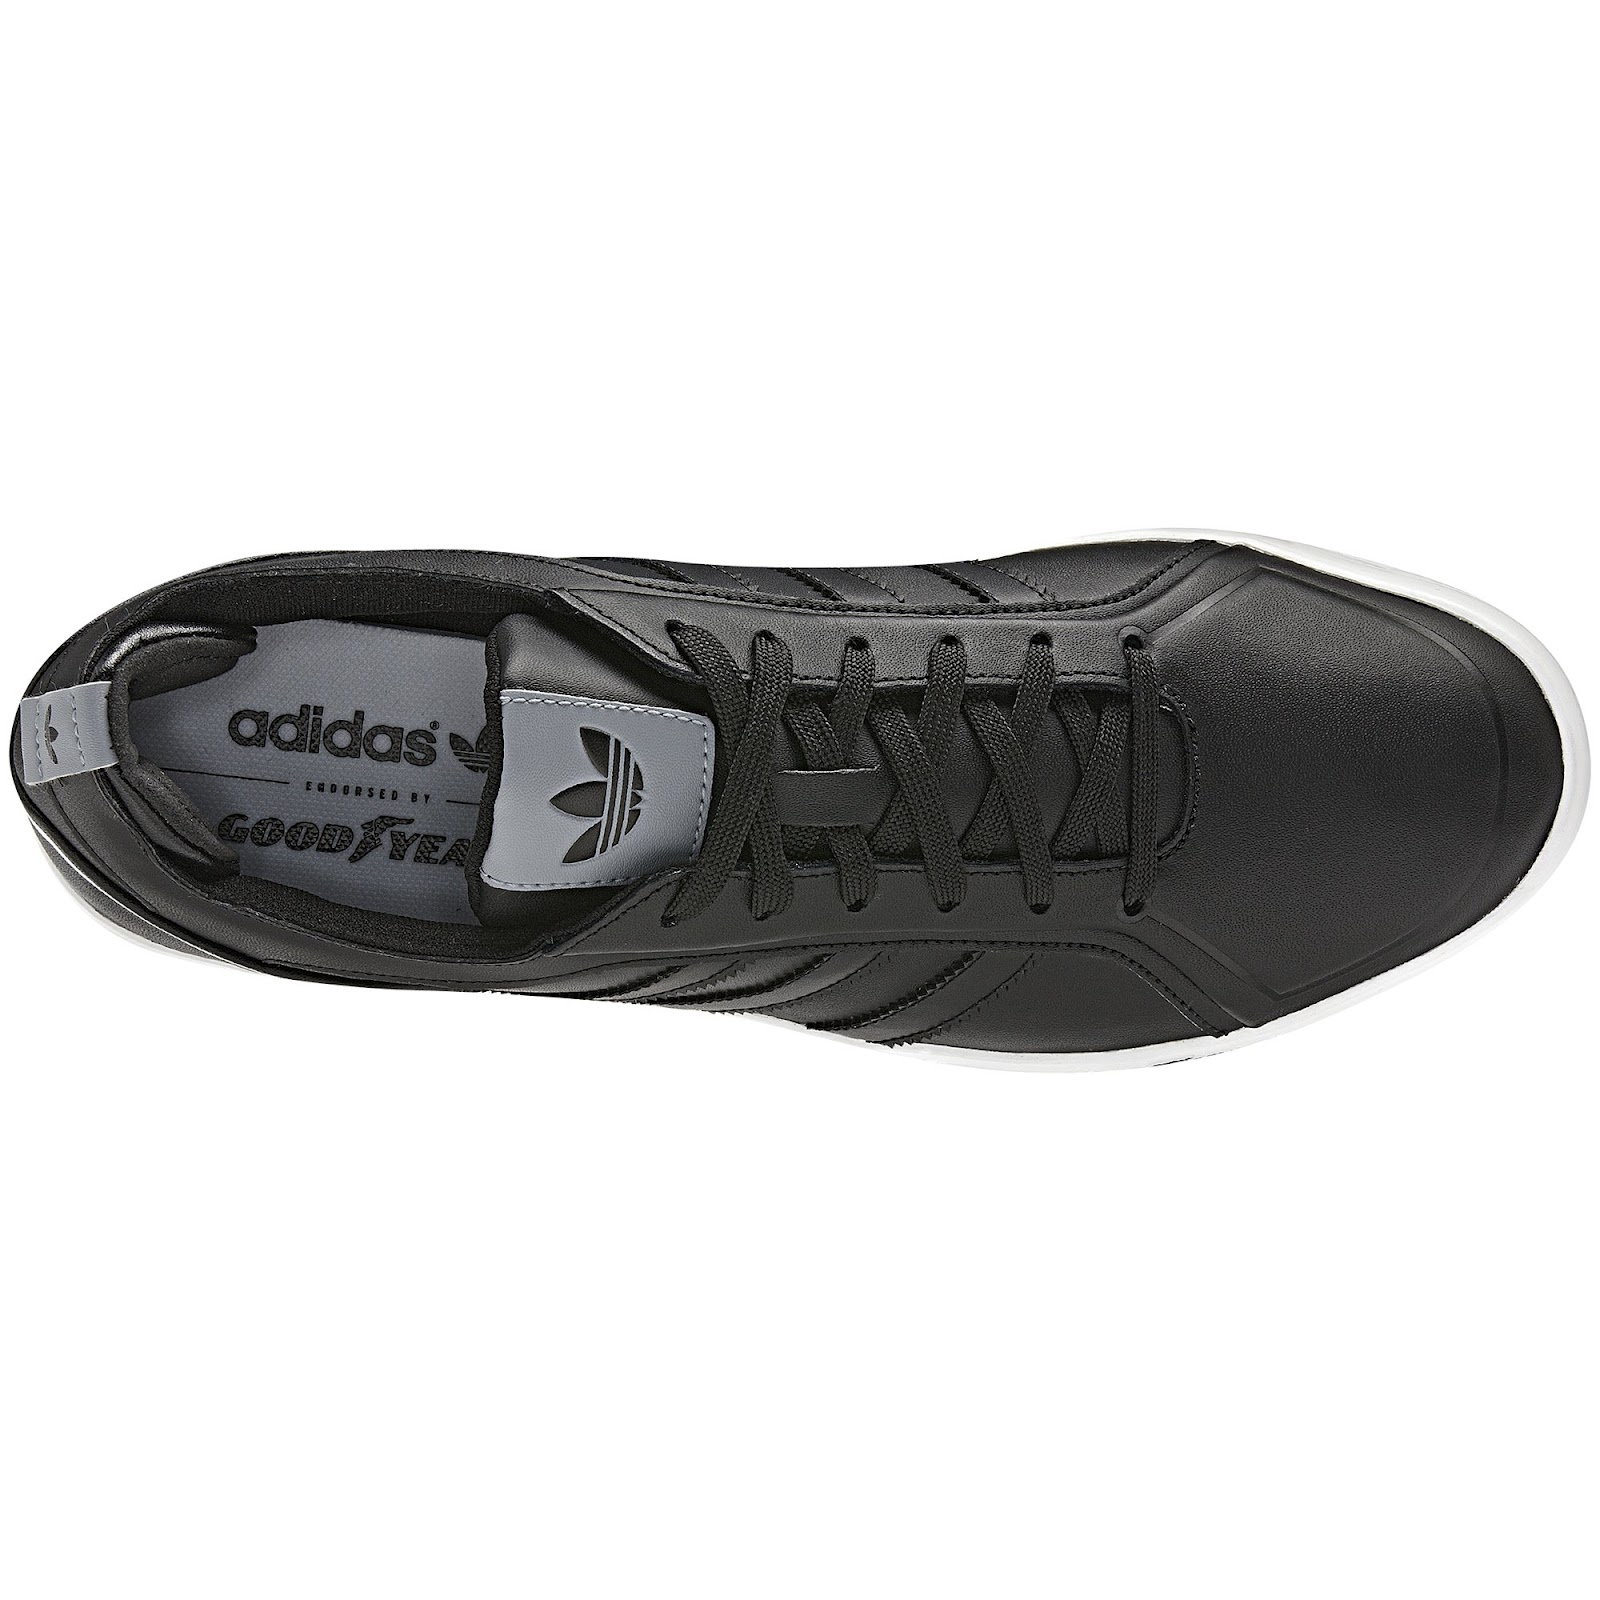 ... Life | Cars Fashion Lifestyle Blog: Adidas Goodyear Collection Shoes